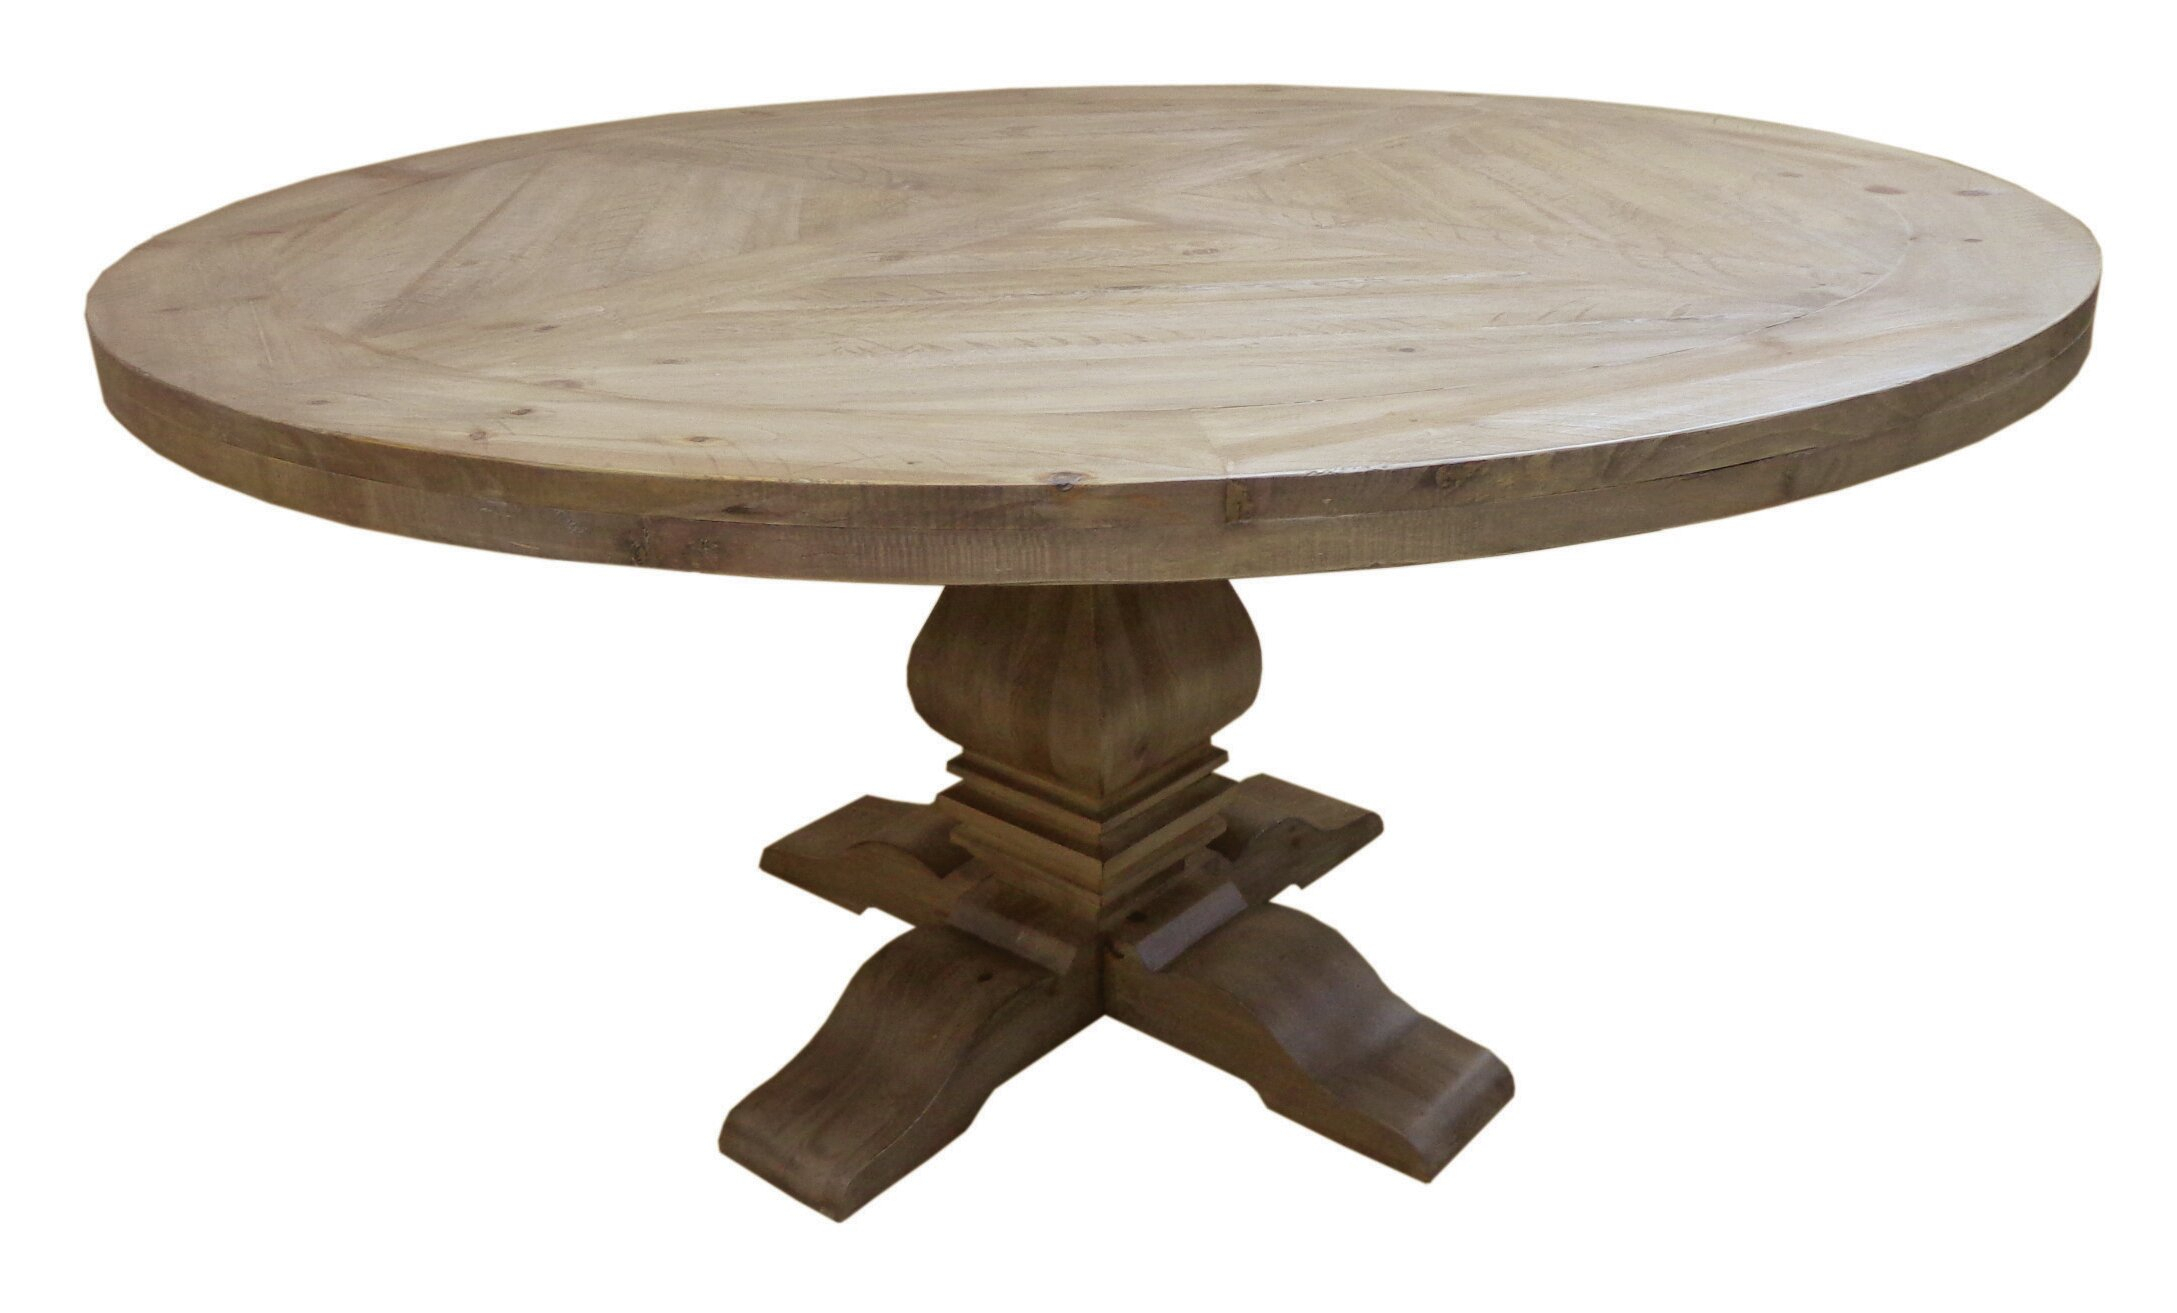 Magaw Solid Wood Dining Table Inside Recent Rae Round Pedestal Dining Tables (Image 11 of 25)